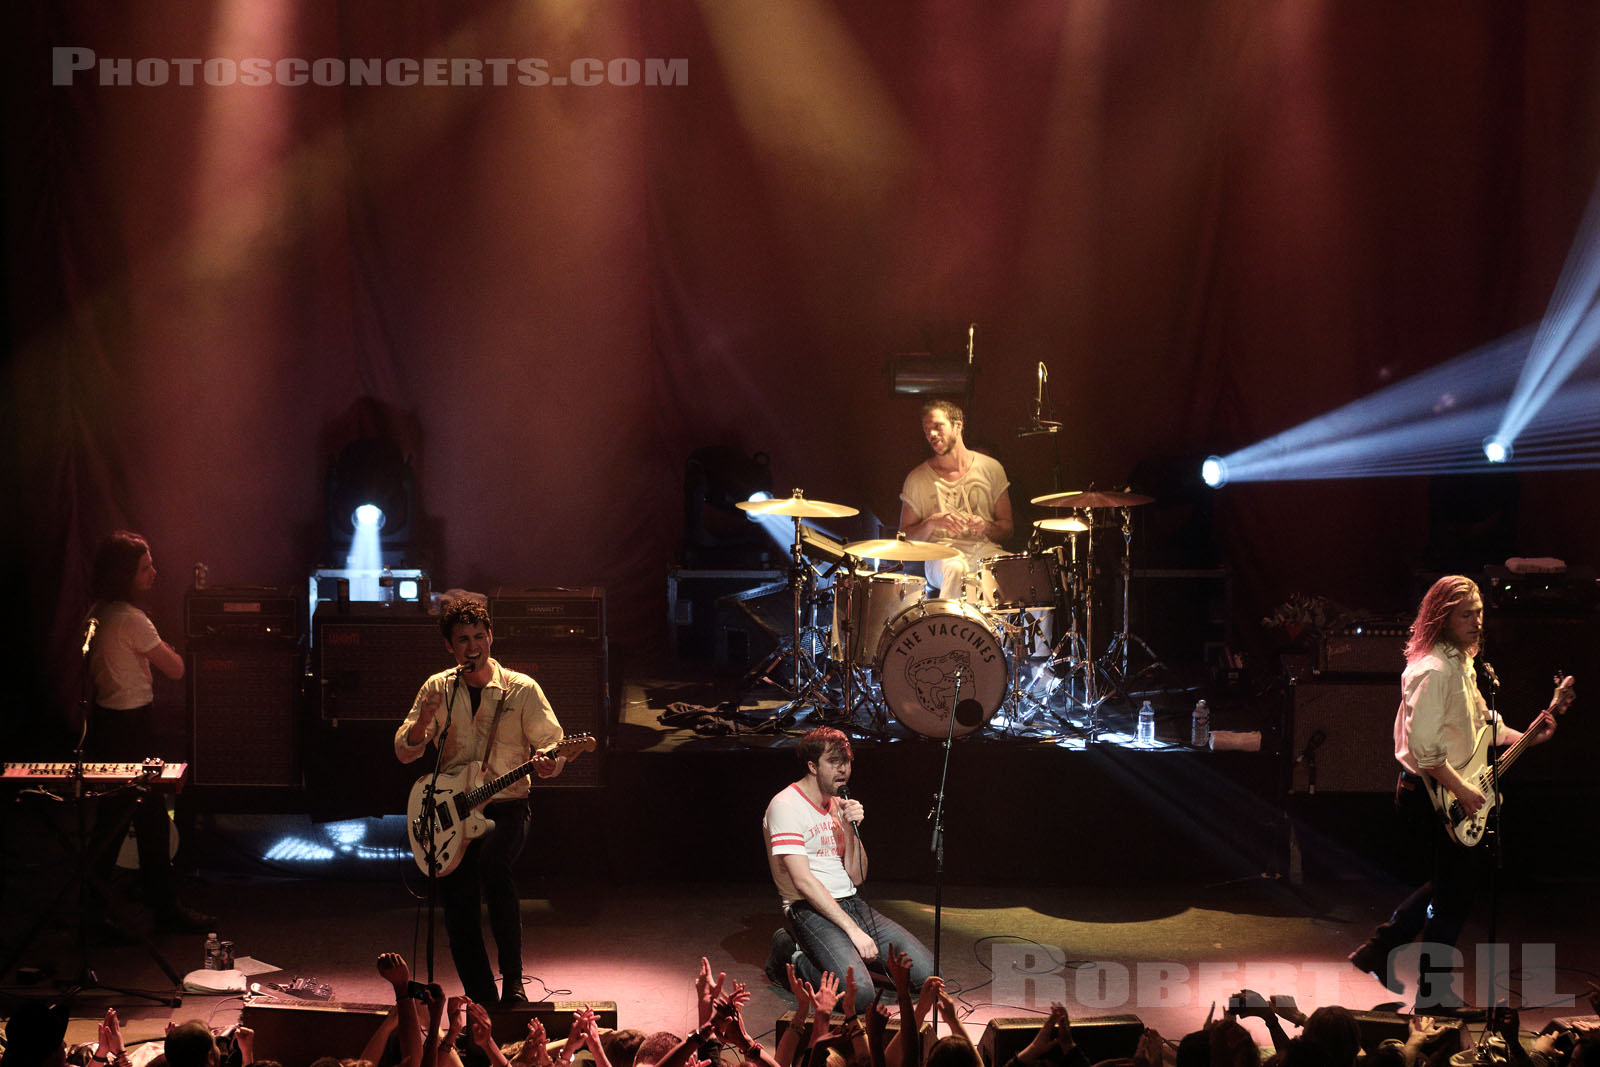 THE VACCINES - 2015-10-07 - PARIS - La Cigale